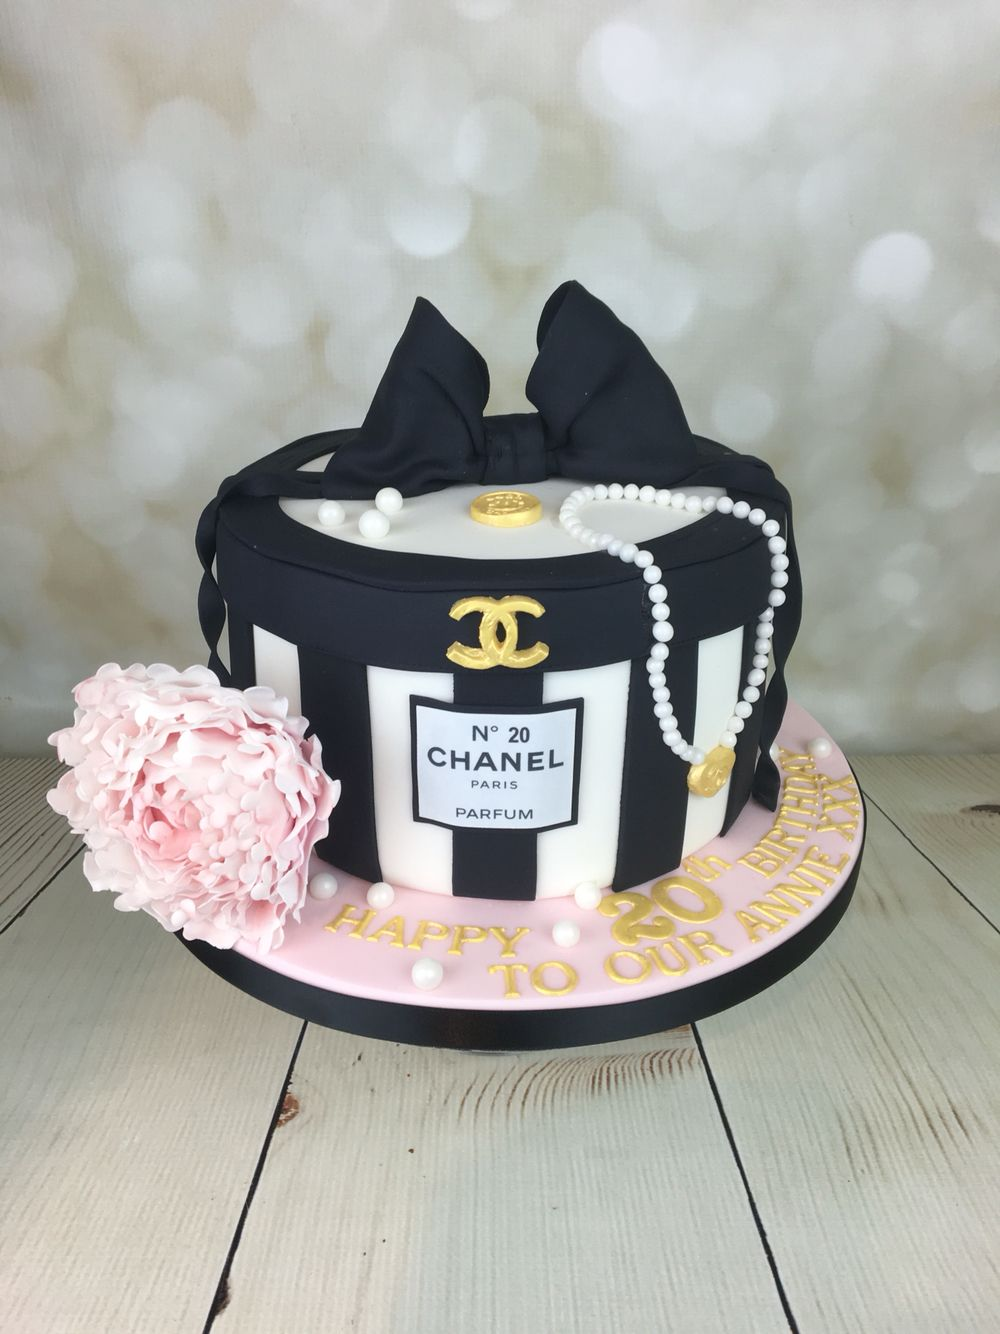 Chanel Hat Box Cake For Annie In Mancot Happy Birthday X Adult Cakes